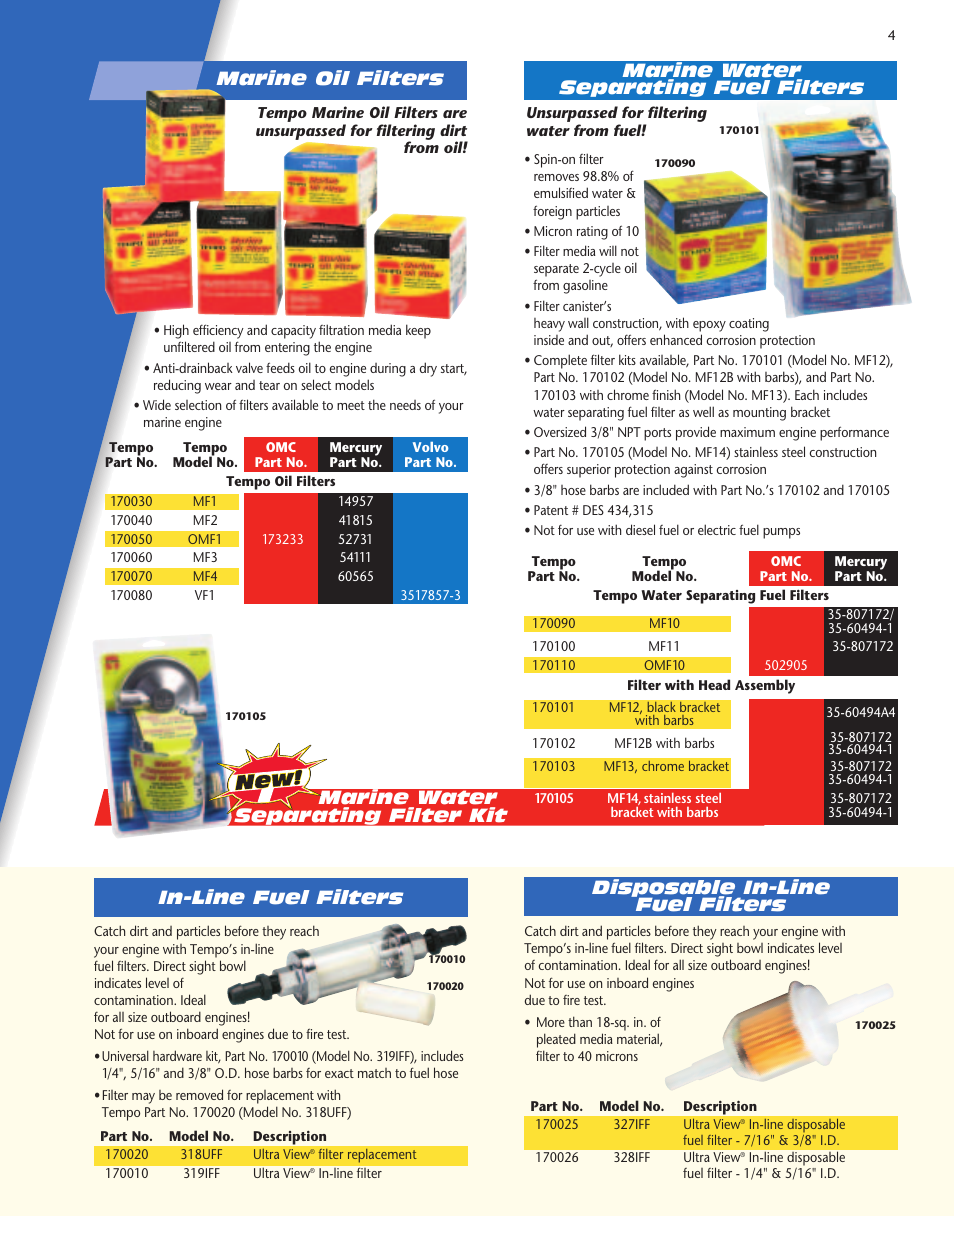 Marine Water Separating Filter Kit Fuel In Line Filters Tempo Vehicle User Manual Page 5 28